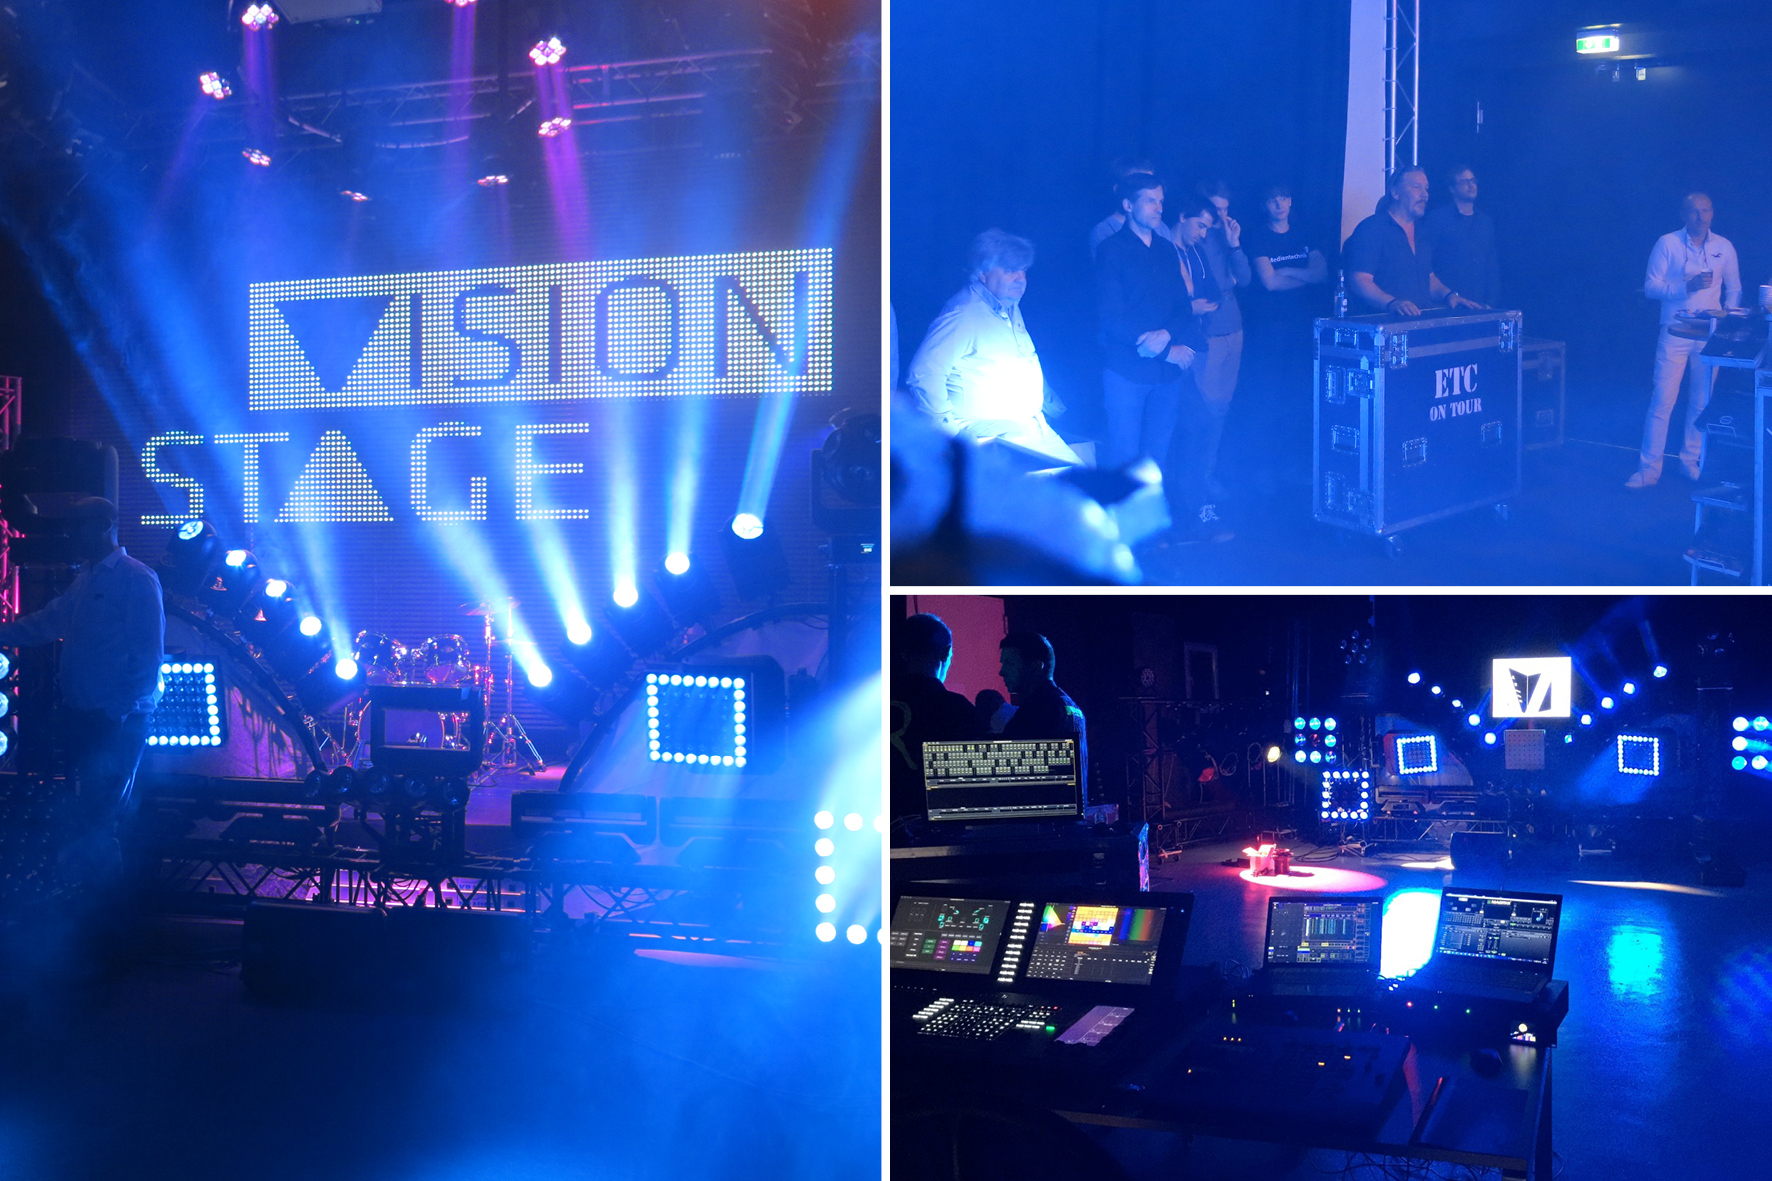 Visionstage Roadshow